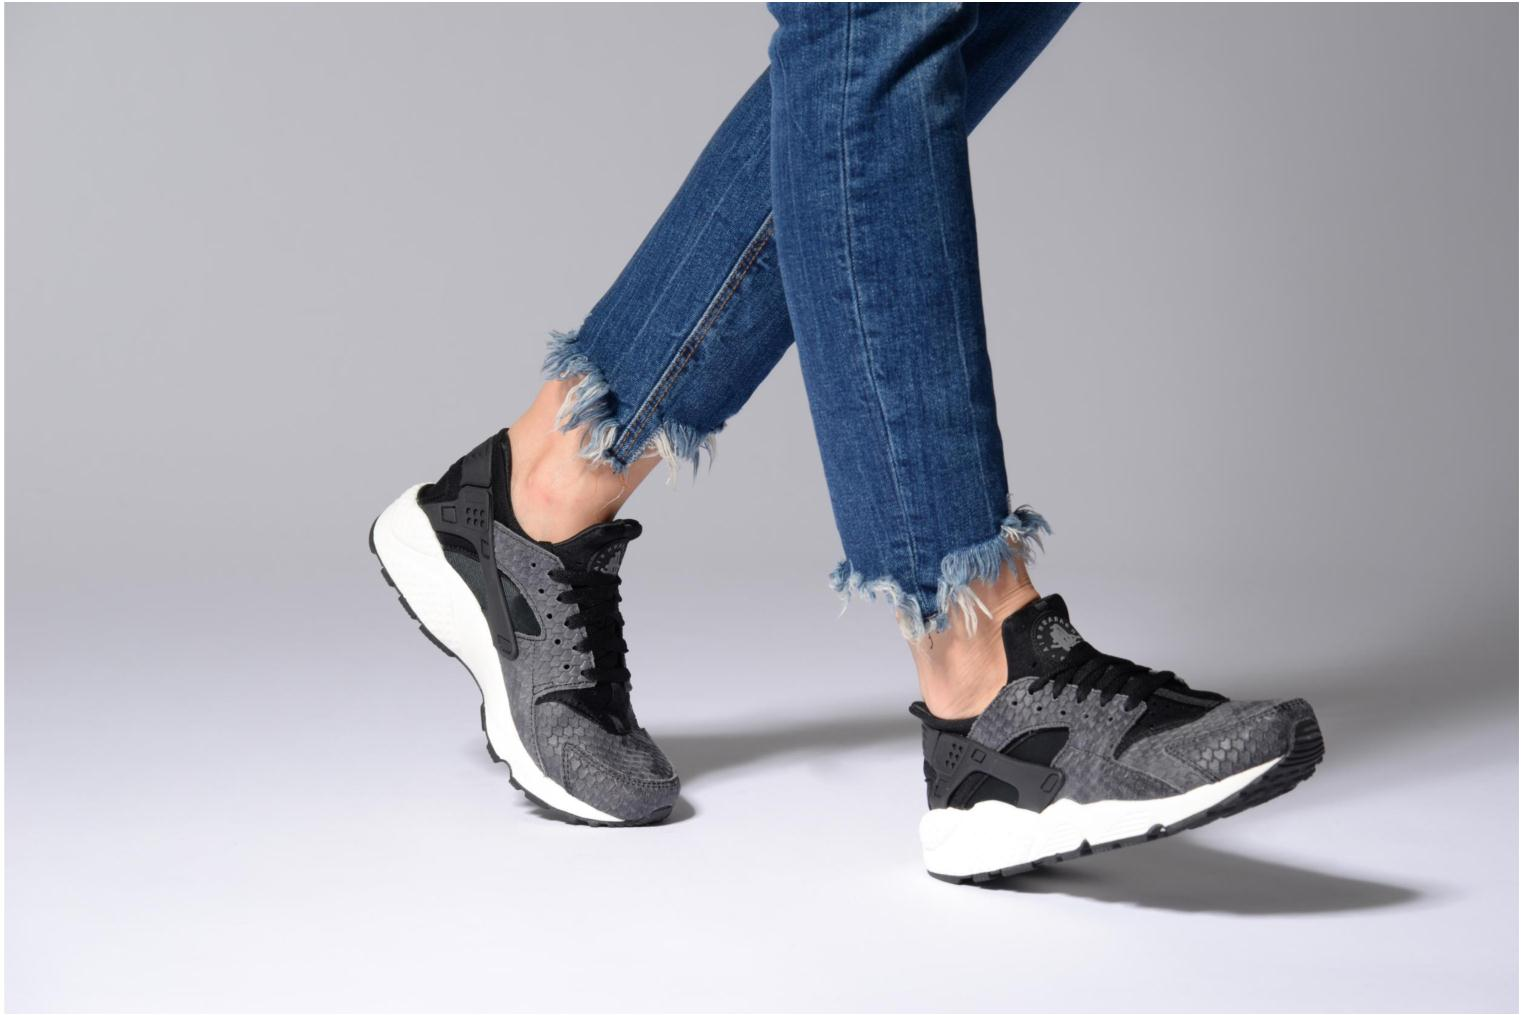 Wmns Air Huarache Run Prm Pr Pltnm/Cl Gry-Anthrct-Mtt Sl